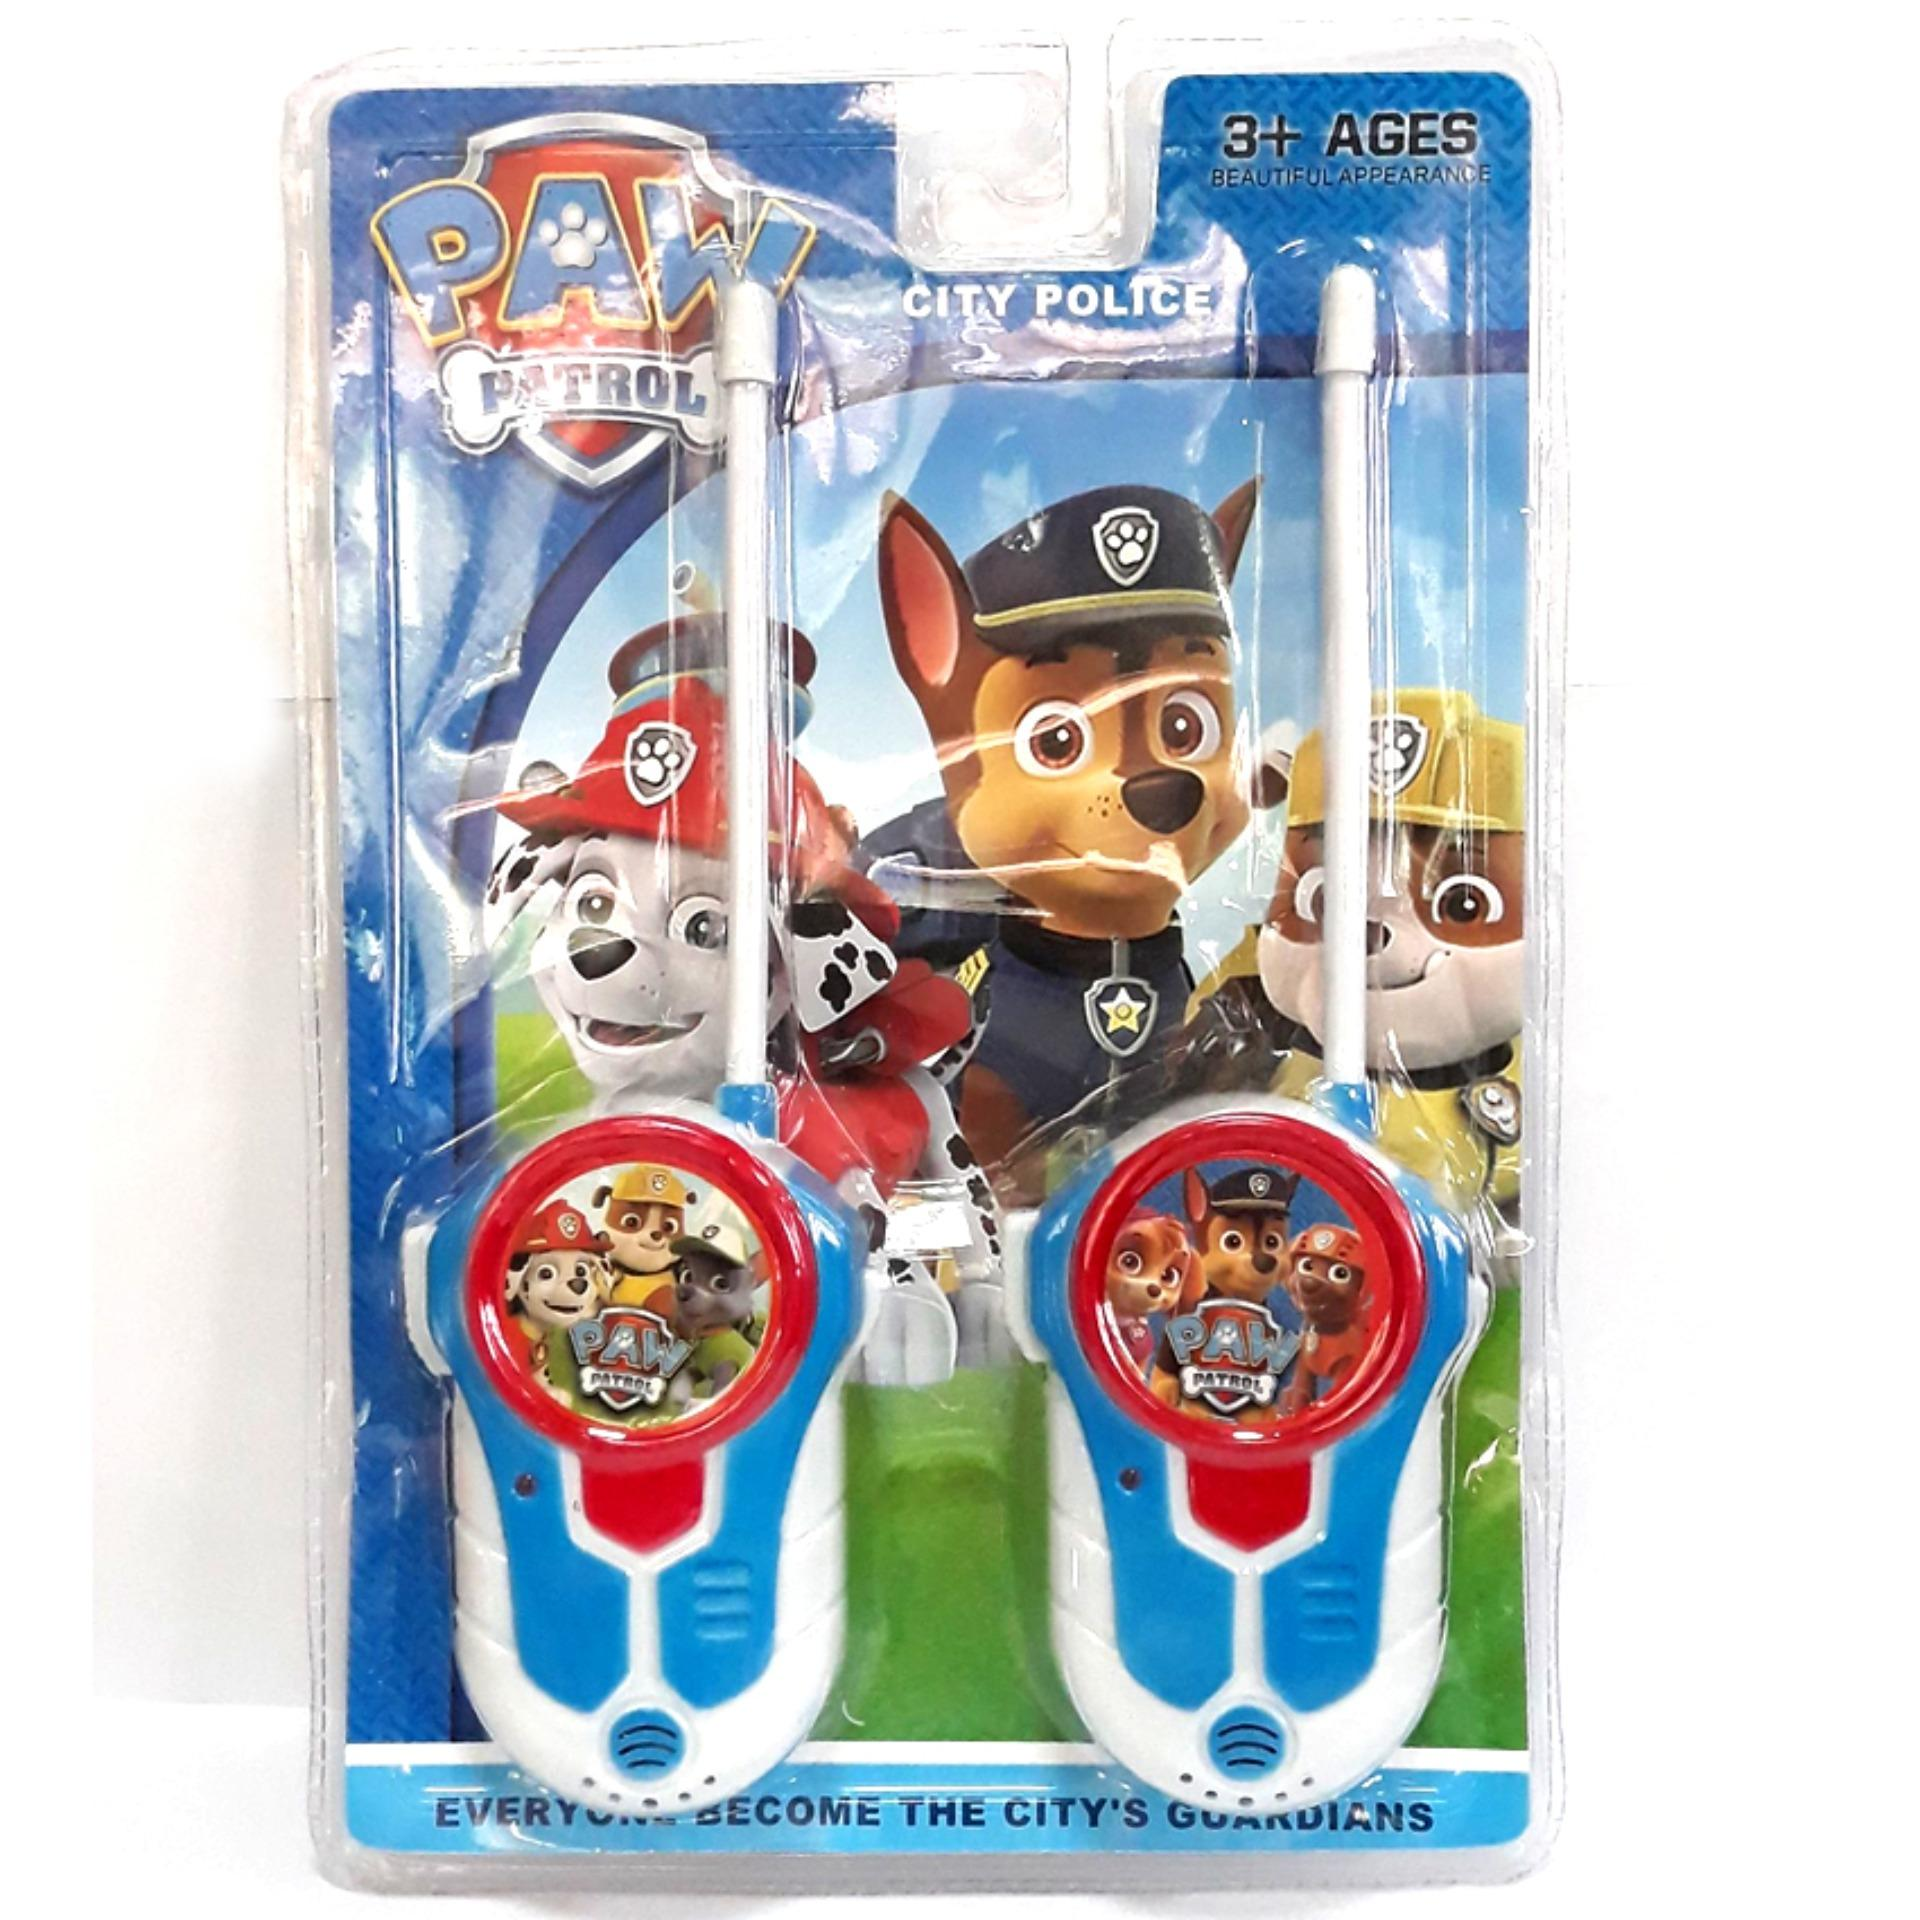 2 Pcs Paw Patrol Kids Walkie Talkie Portable 2 Way Toy Radios